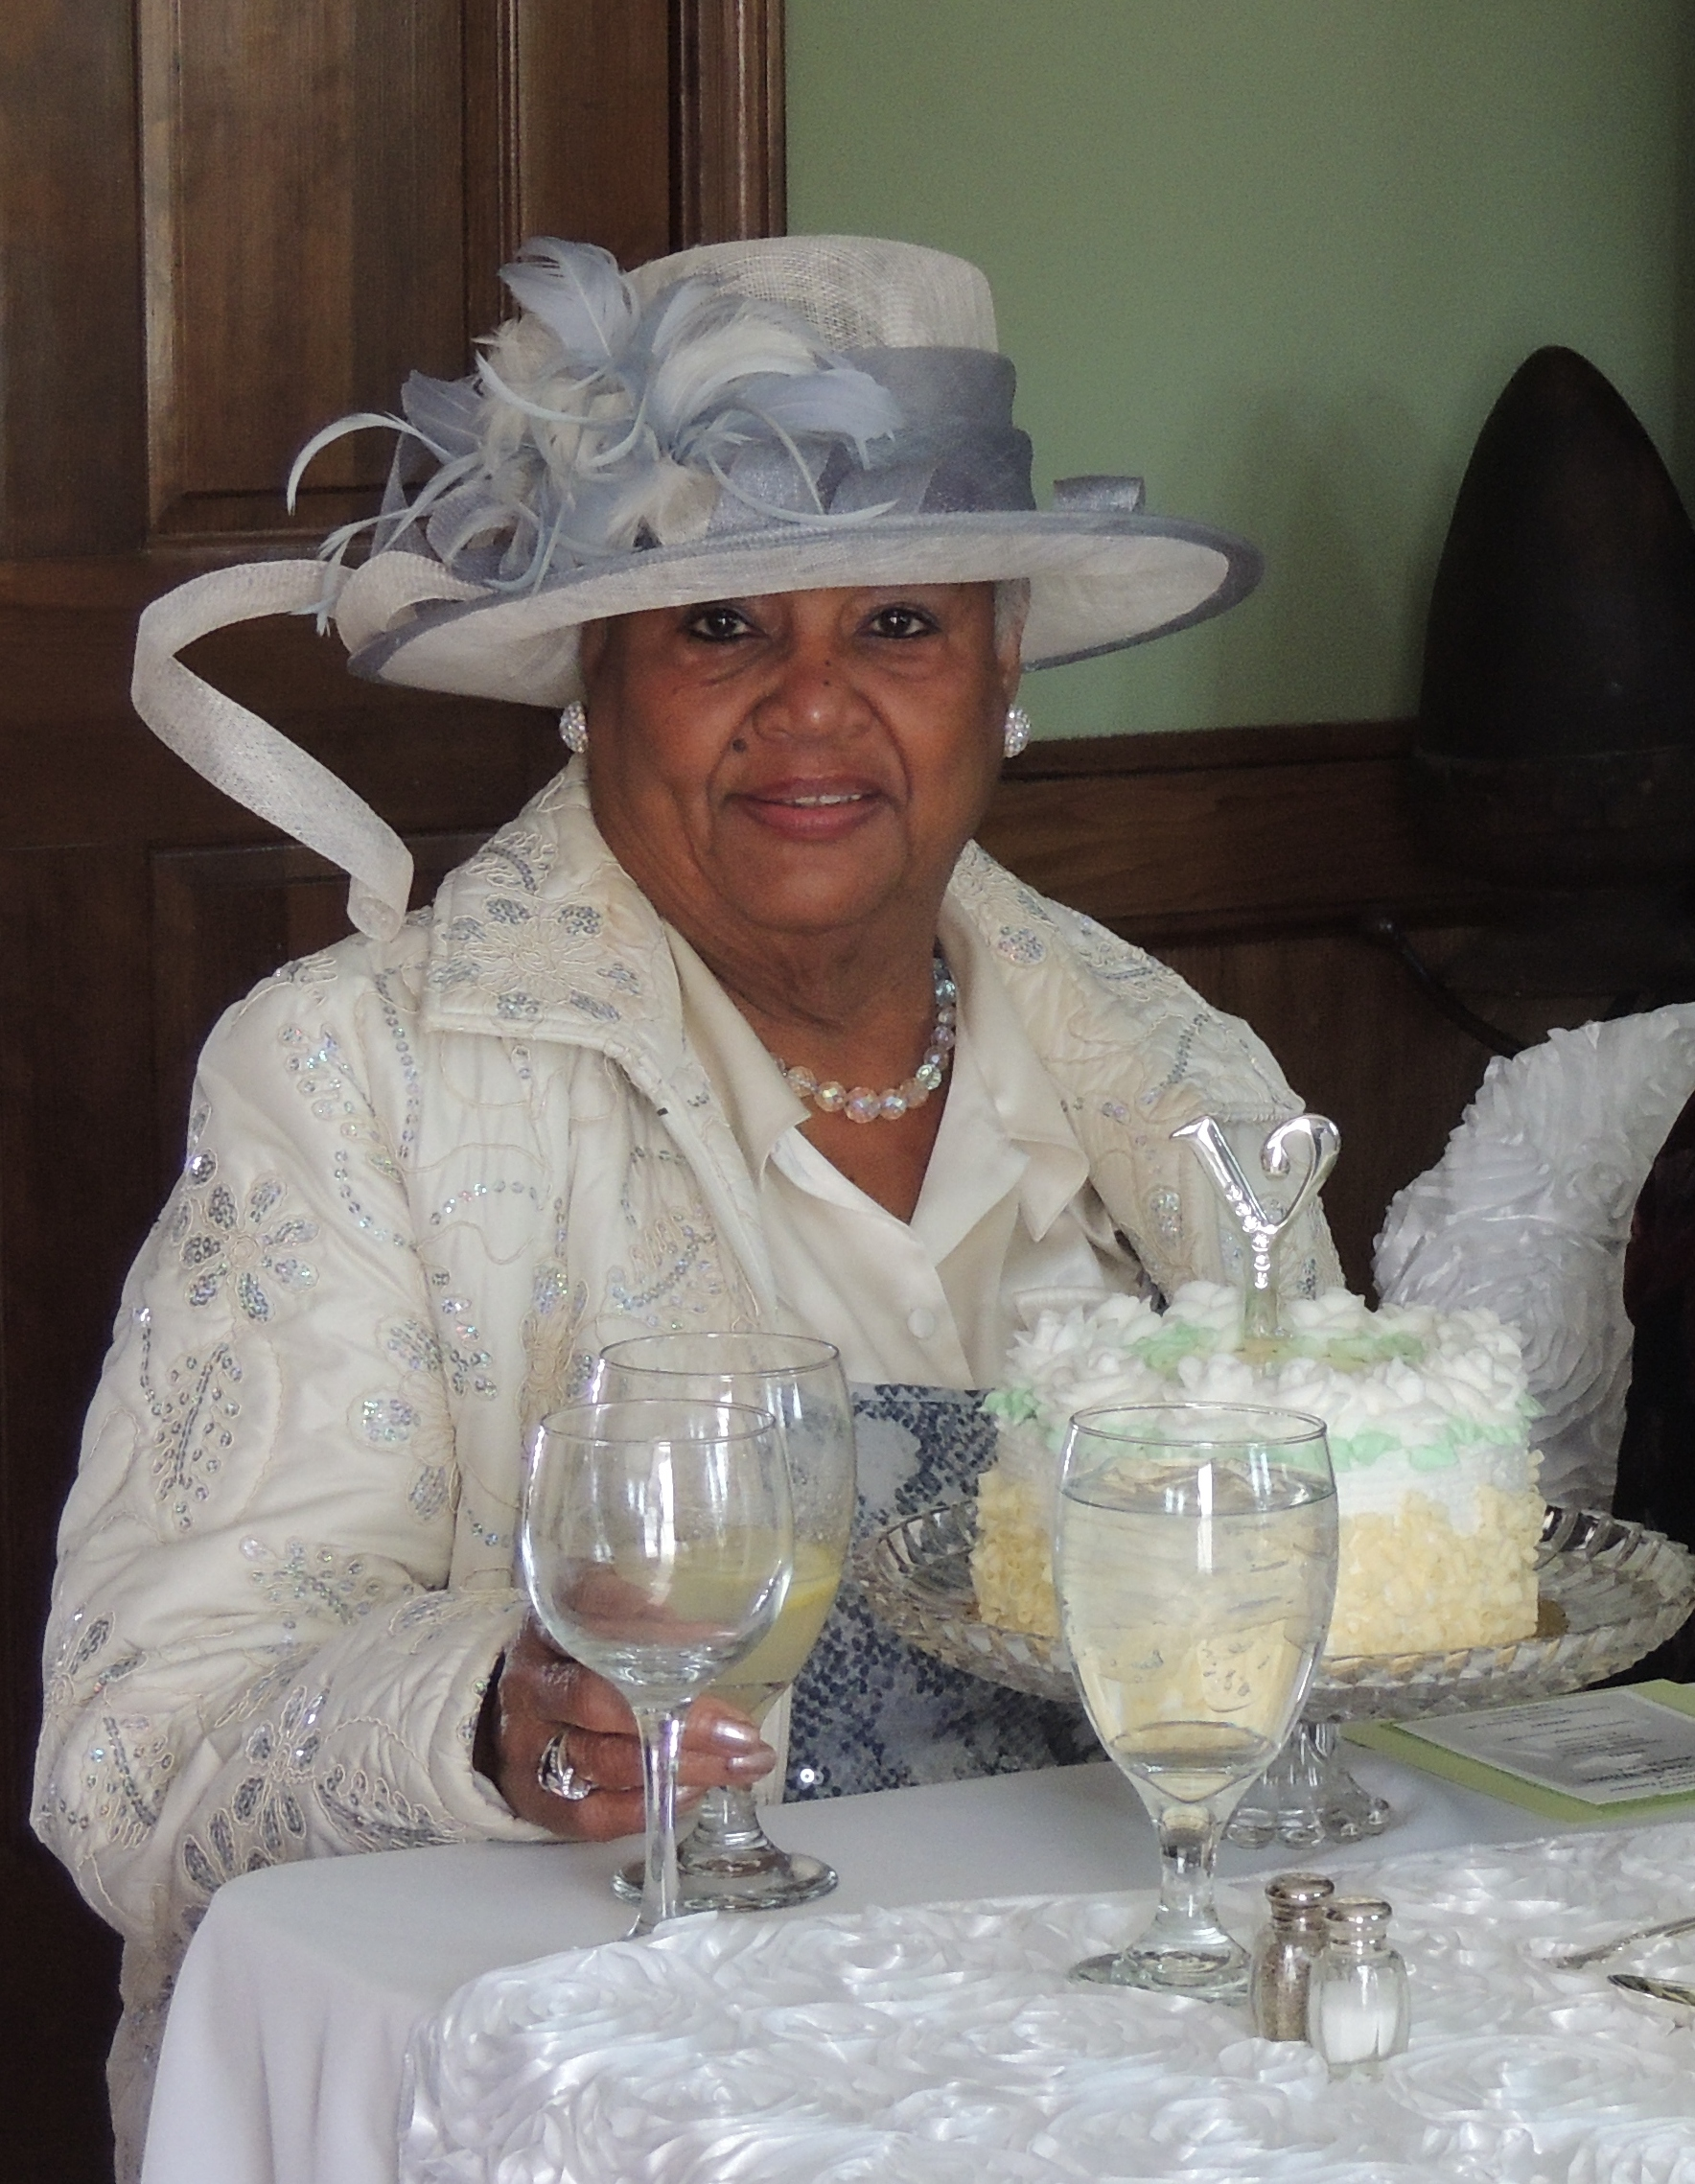 INSPIRATION: My Mom. Ever poised, elegant, and ahead of her time, but much more than that...forever young!